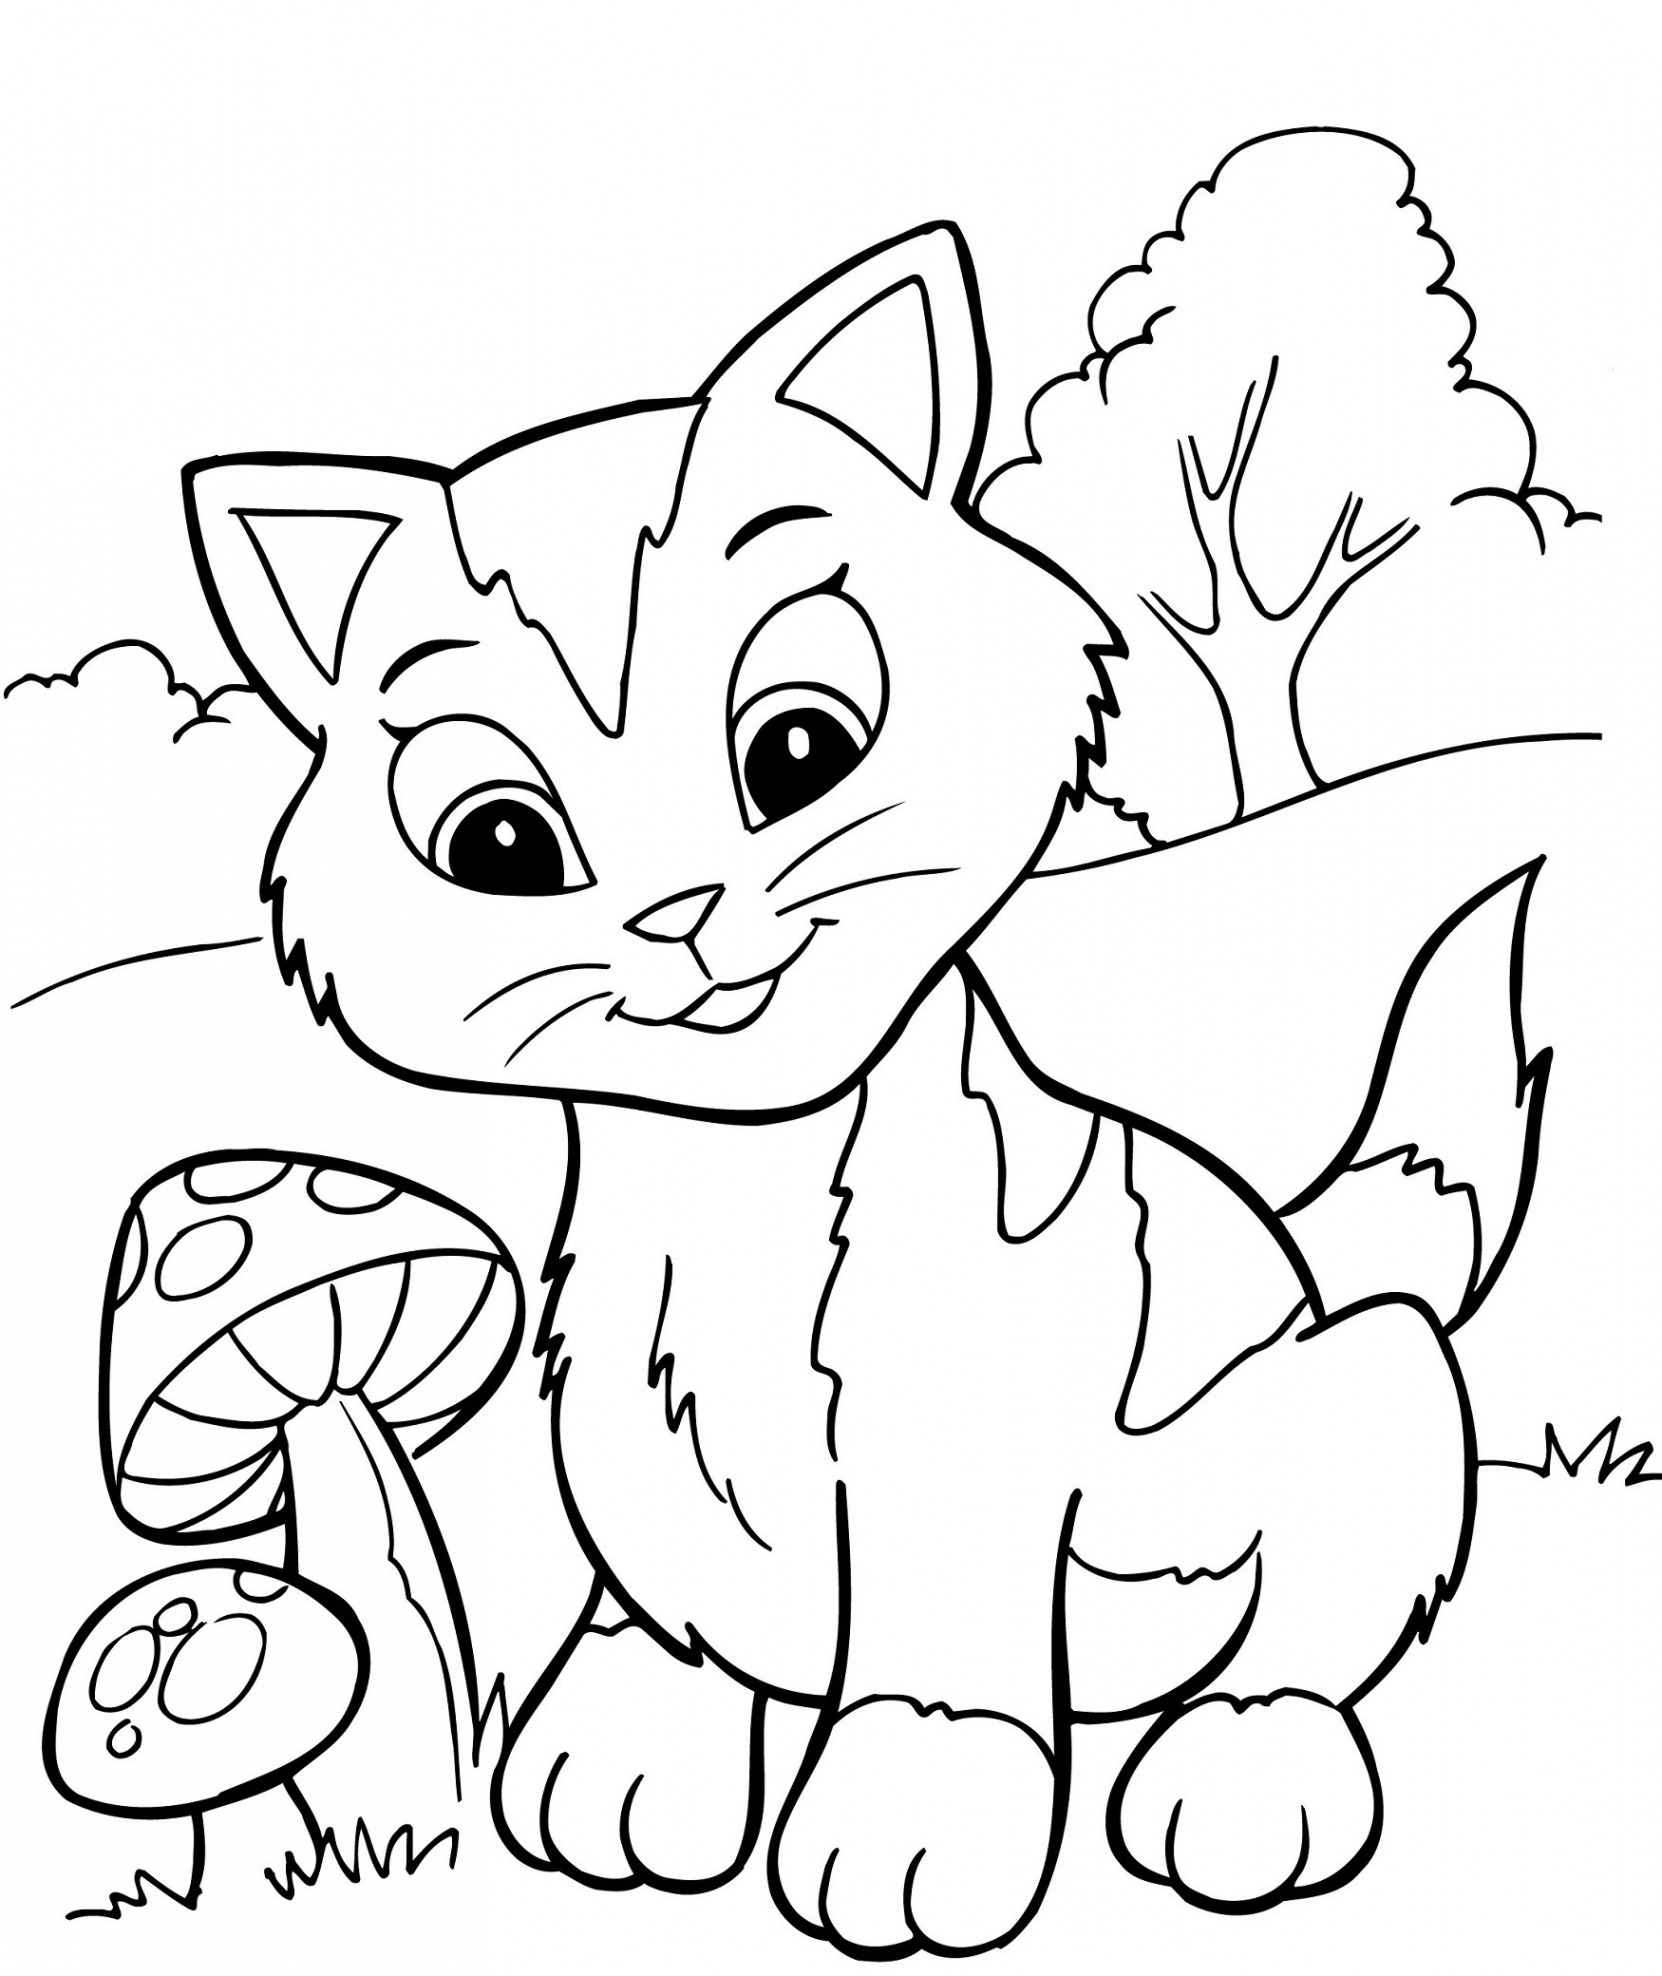 Christmas Kitten Coloring Sheets With Kittens Pages Printable Free